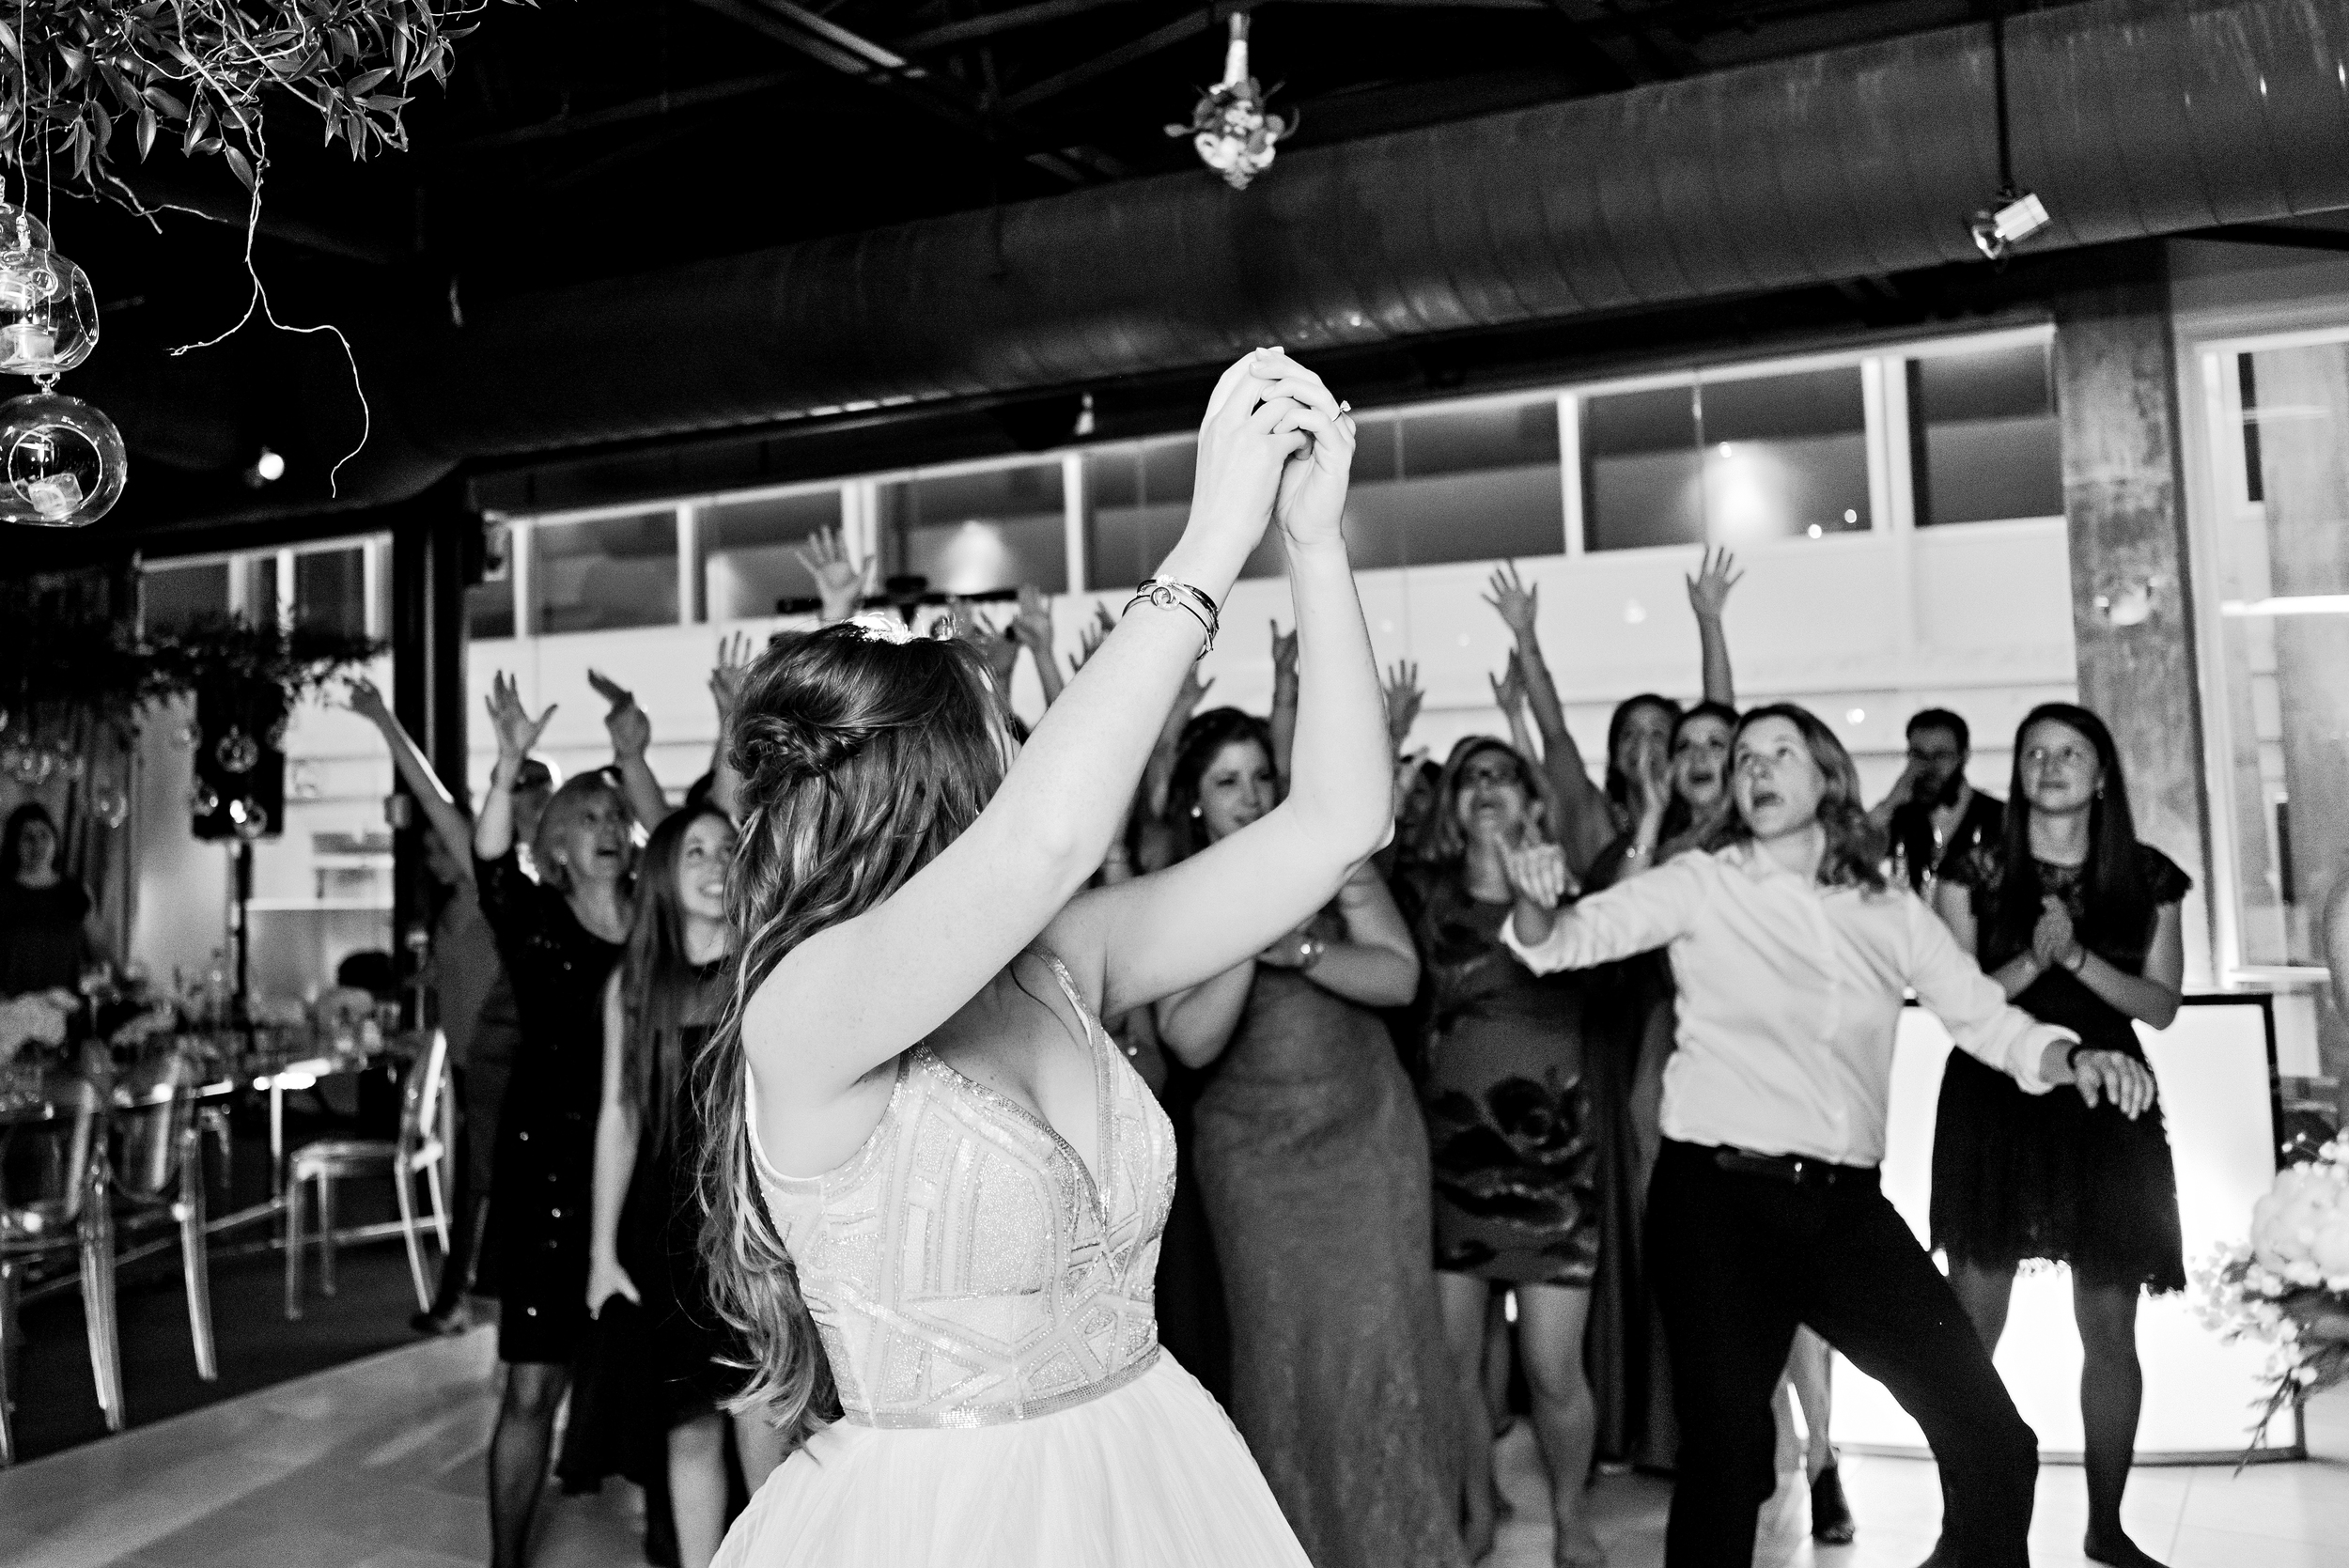 On of the brides doing her bouquet toss